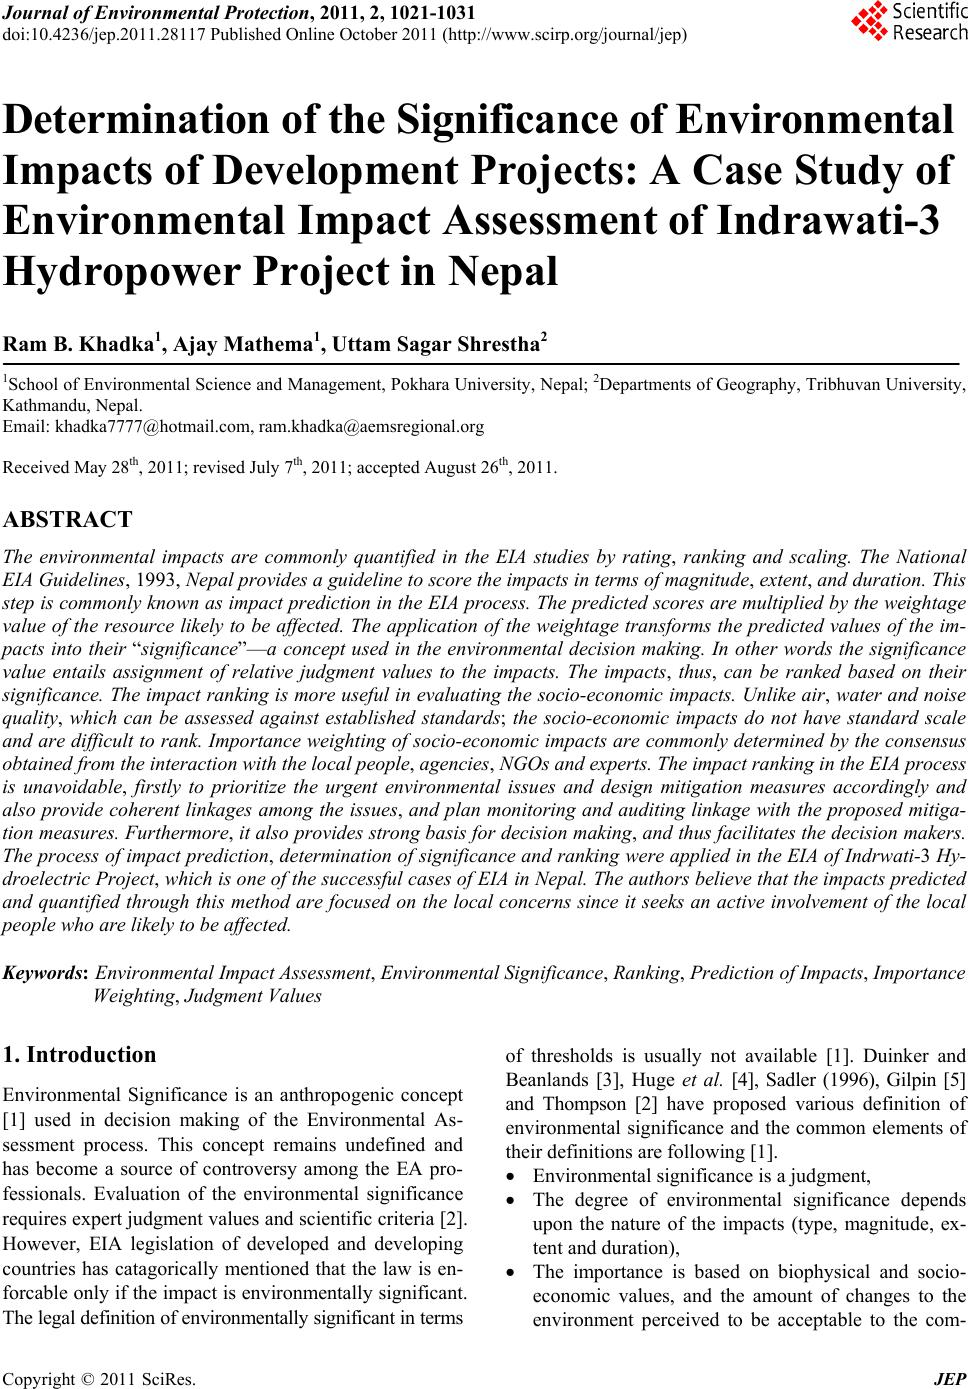 environmental impact assessment case study hydropower project